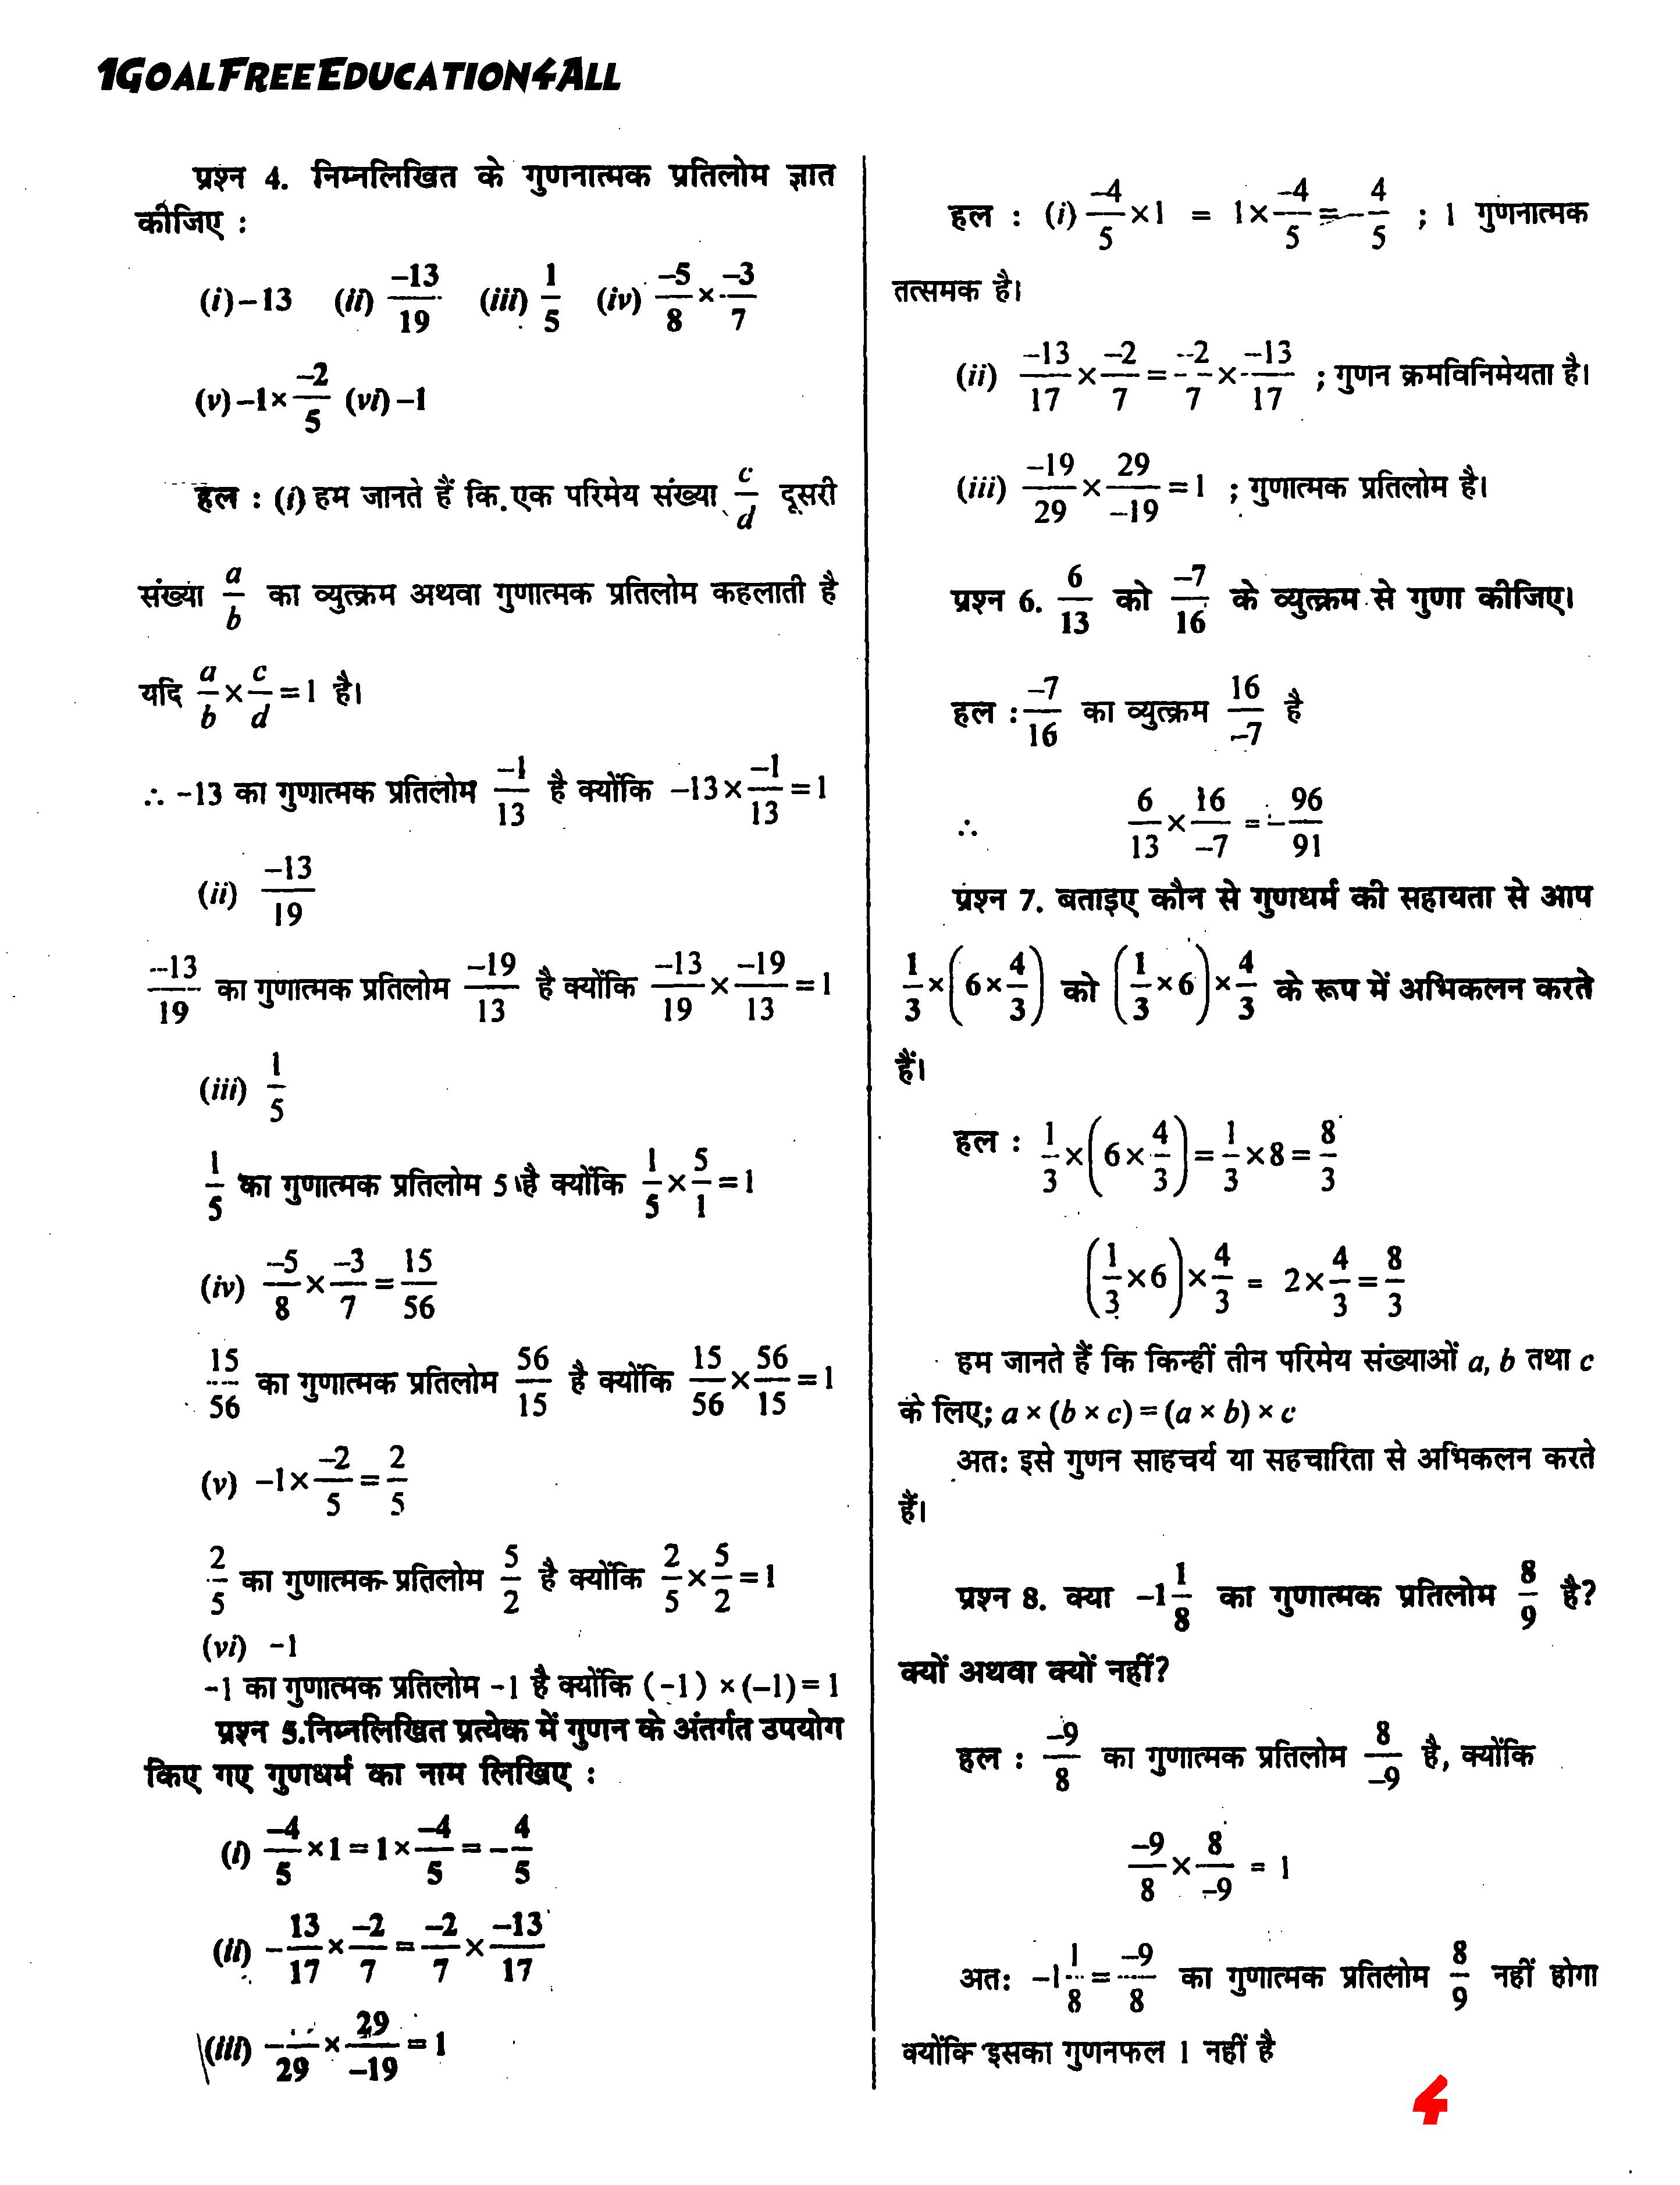 8th class maths solution in hindi for Android - APK Download